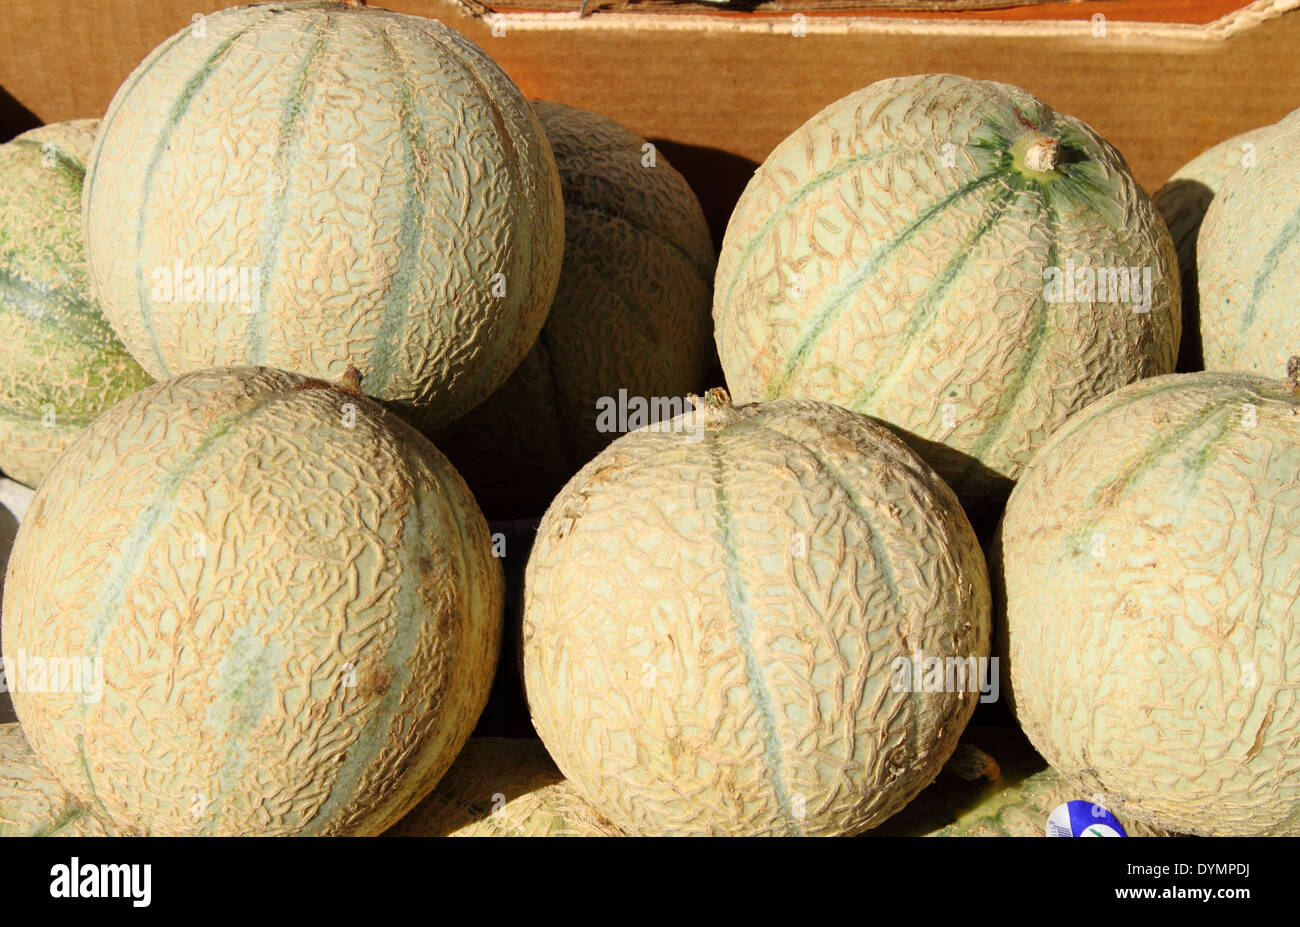 Fresh melons displayed in a greengrocery - Stock Image